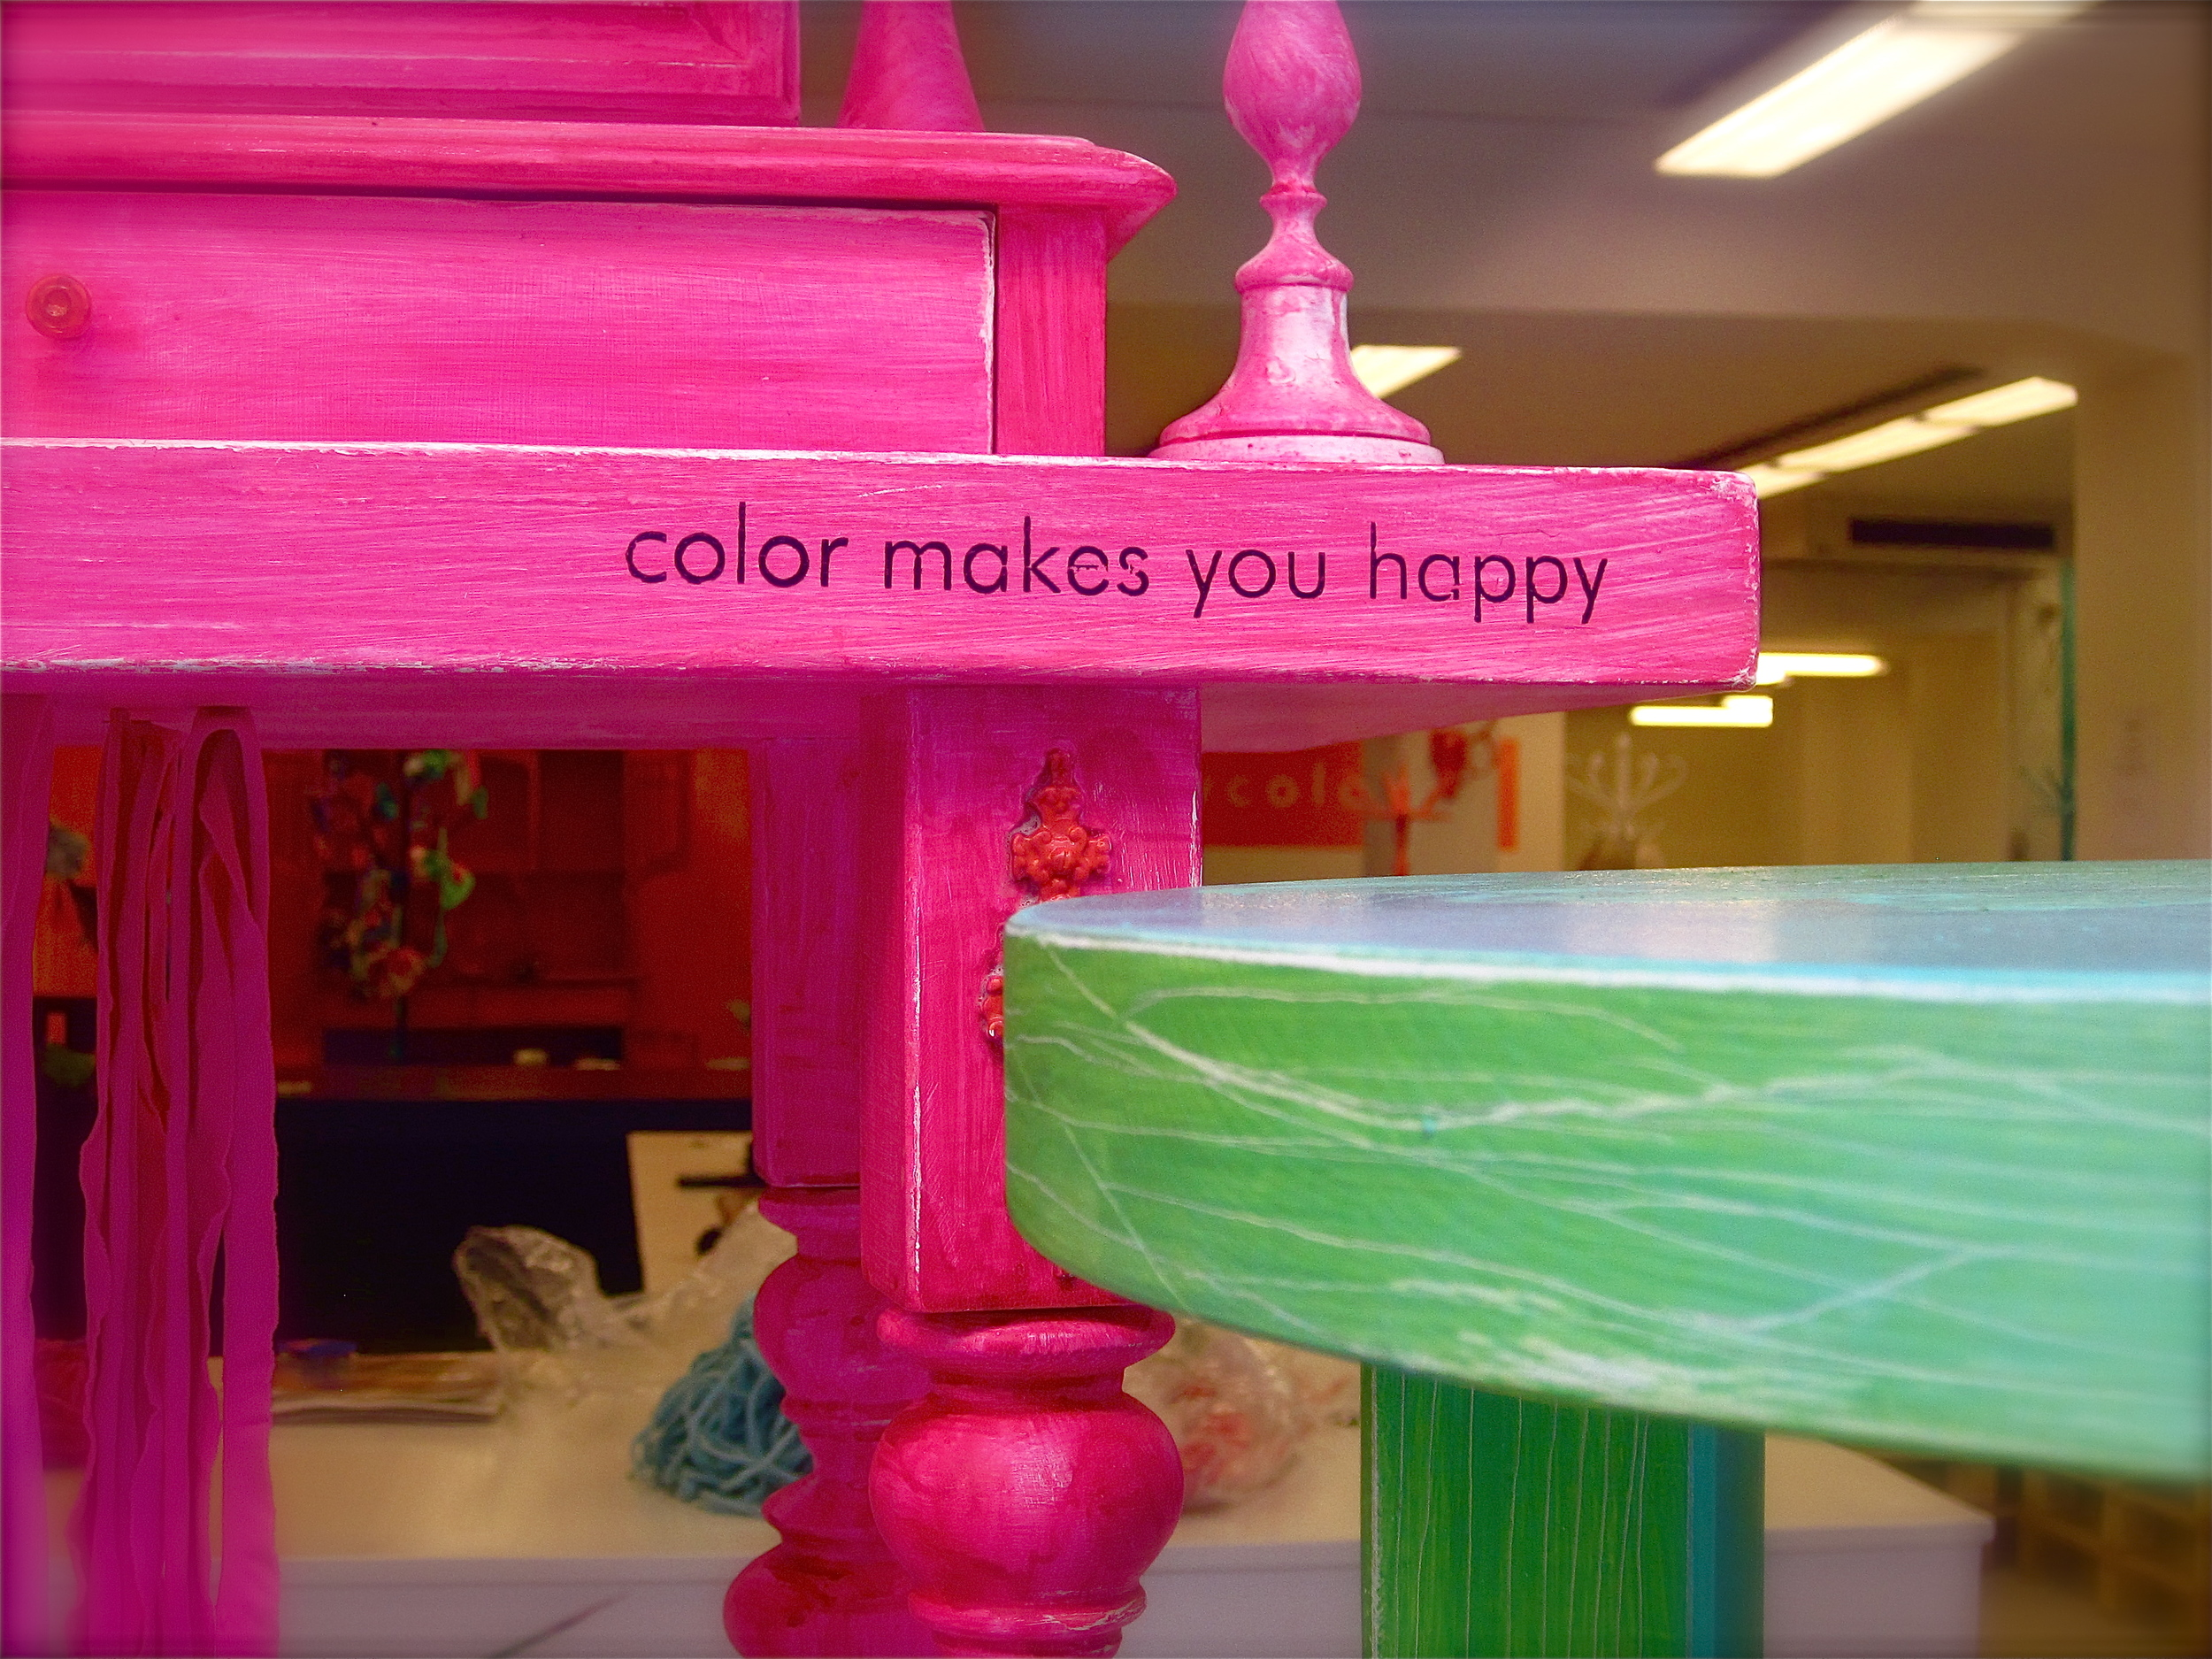 Color makes you happy.JPG